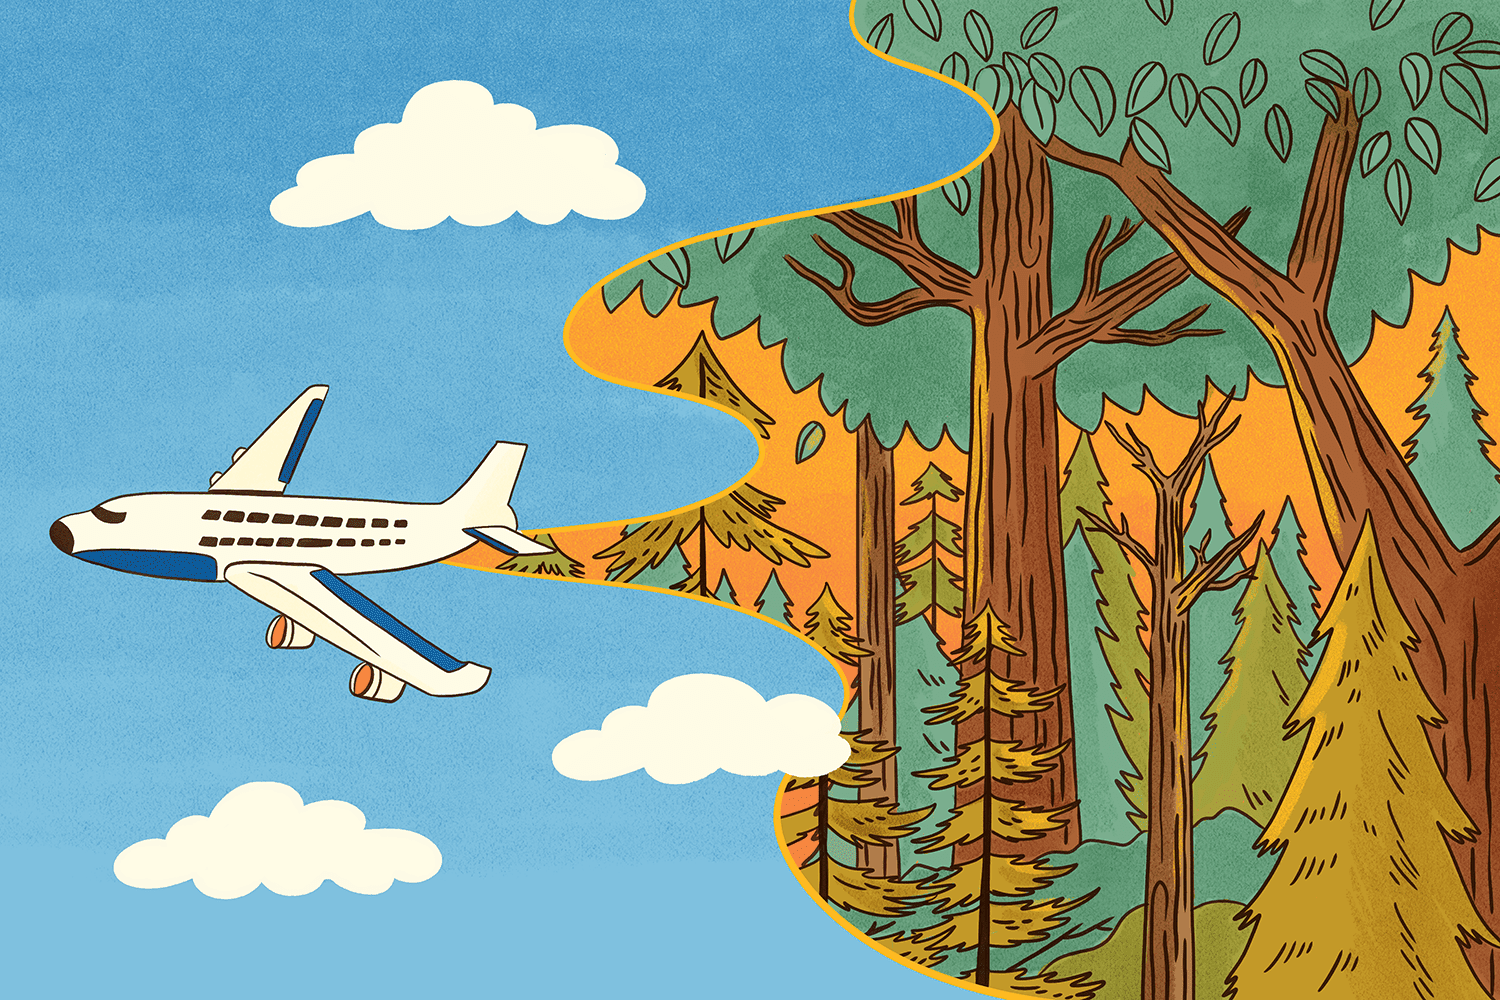 An illustration of a JetBlue plane flying through a sky clearing the way for trees to grow